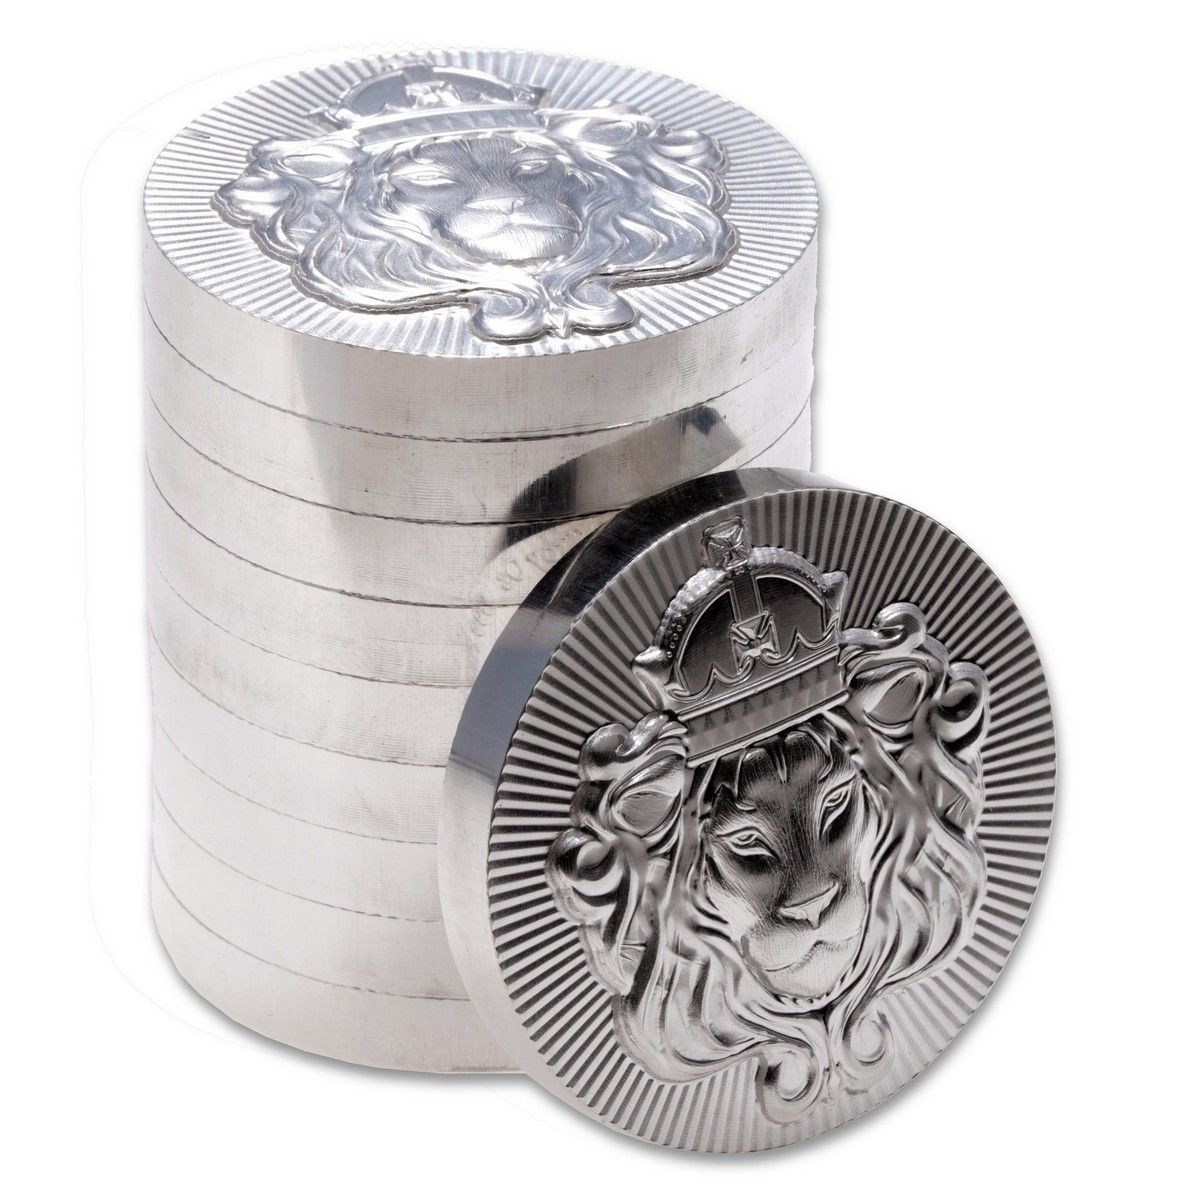 2 Oz Scottsdale Stacker Round Canadian Pmx Silver Bullion Rare Coins Worth Money Valuable Coins